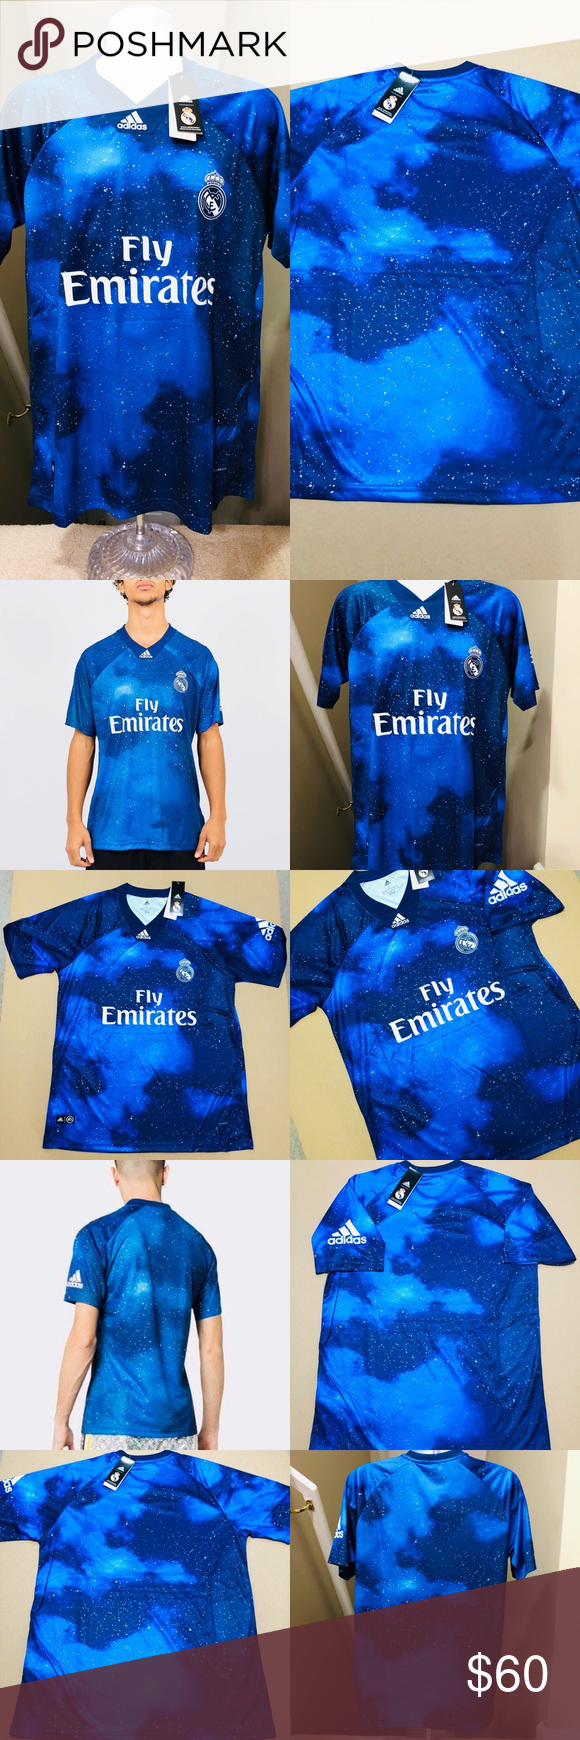 182c4b2ca 2019 Real Madrid EA Sports Soccer Jersey FIFA 2019 Real Madrid FC  RARE  •  Ea Sports Jersey • Futbol Soccer Jersey Football 2018 Real Madrid FiFa 19  Soccer ...